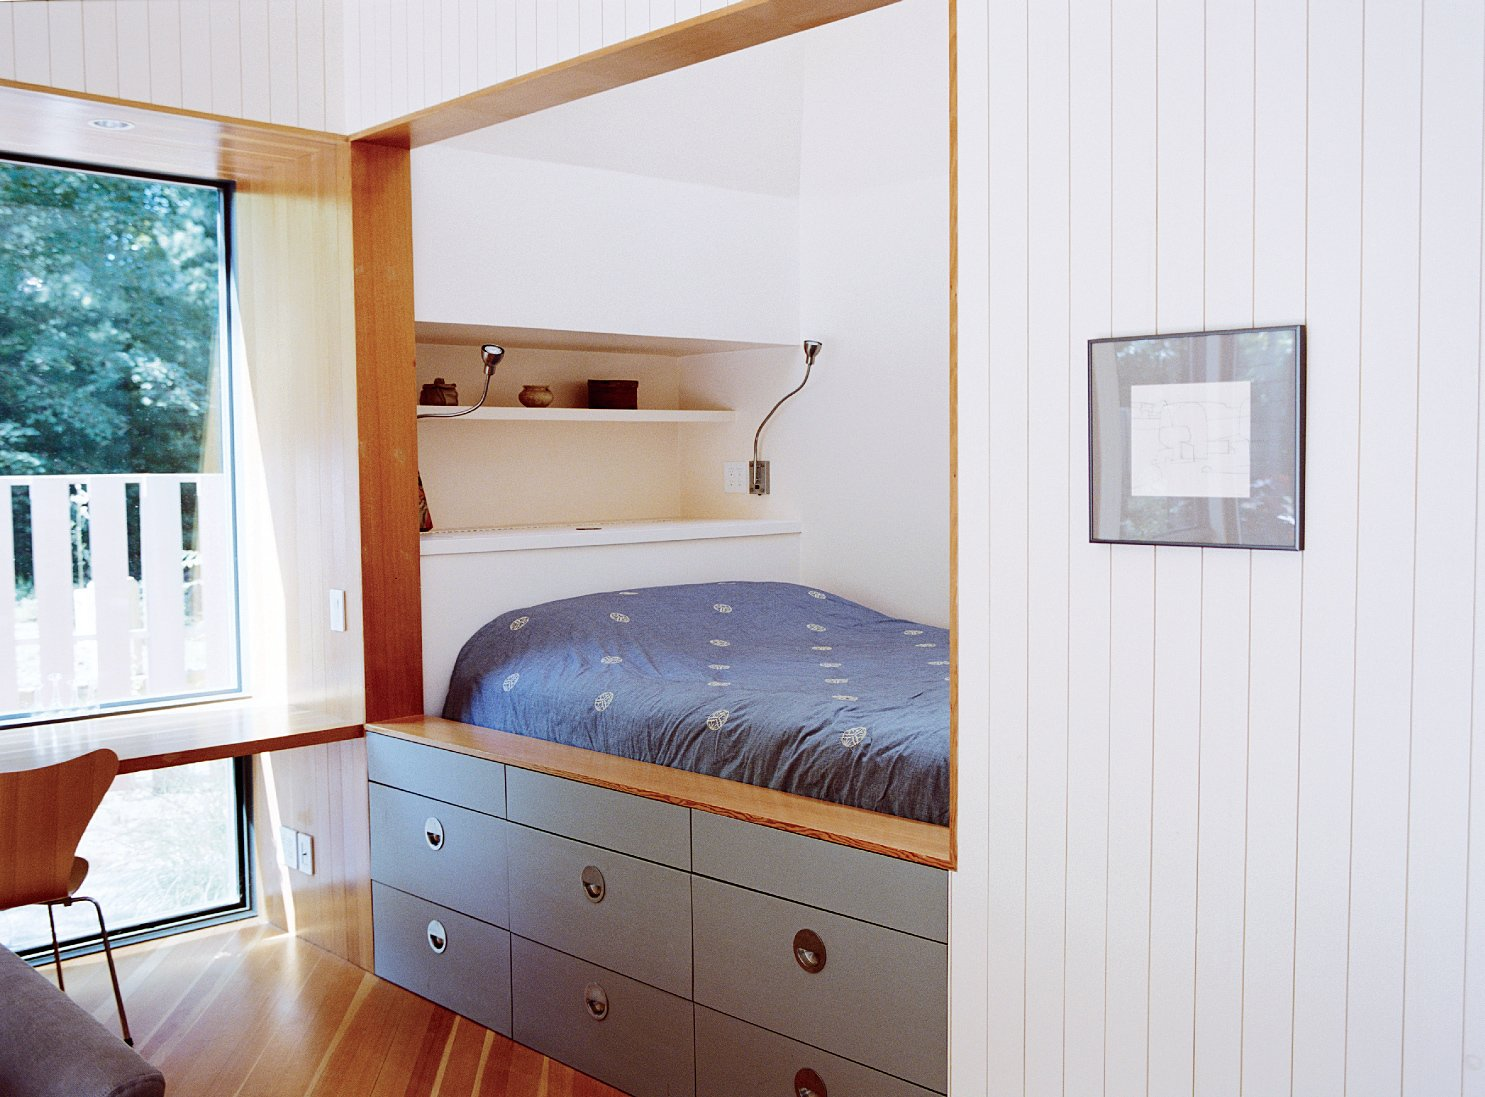 Bedroom, Shelves, Medium Hardwood Floor, and Bed Key to the space-efficient floor plan is a strategically placed set of recessed areas, includingthe sleeping nook and writing desk.  Photo 4 of 12 in This Tiny New England Cottage Is a No-Frills Weekend Hideaway